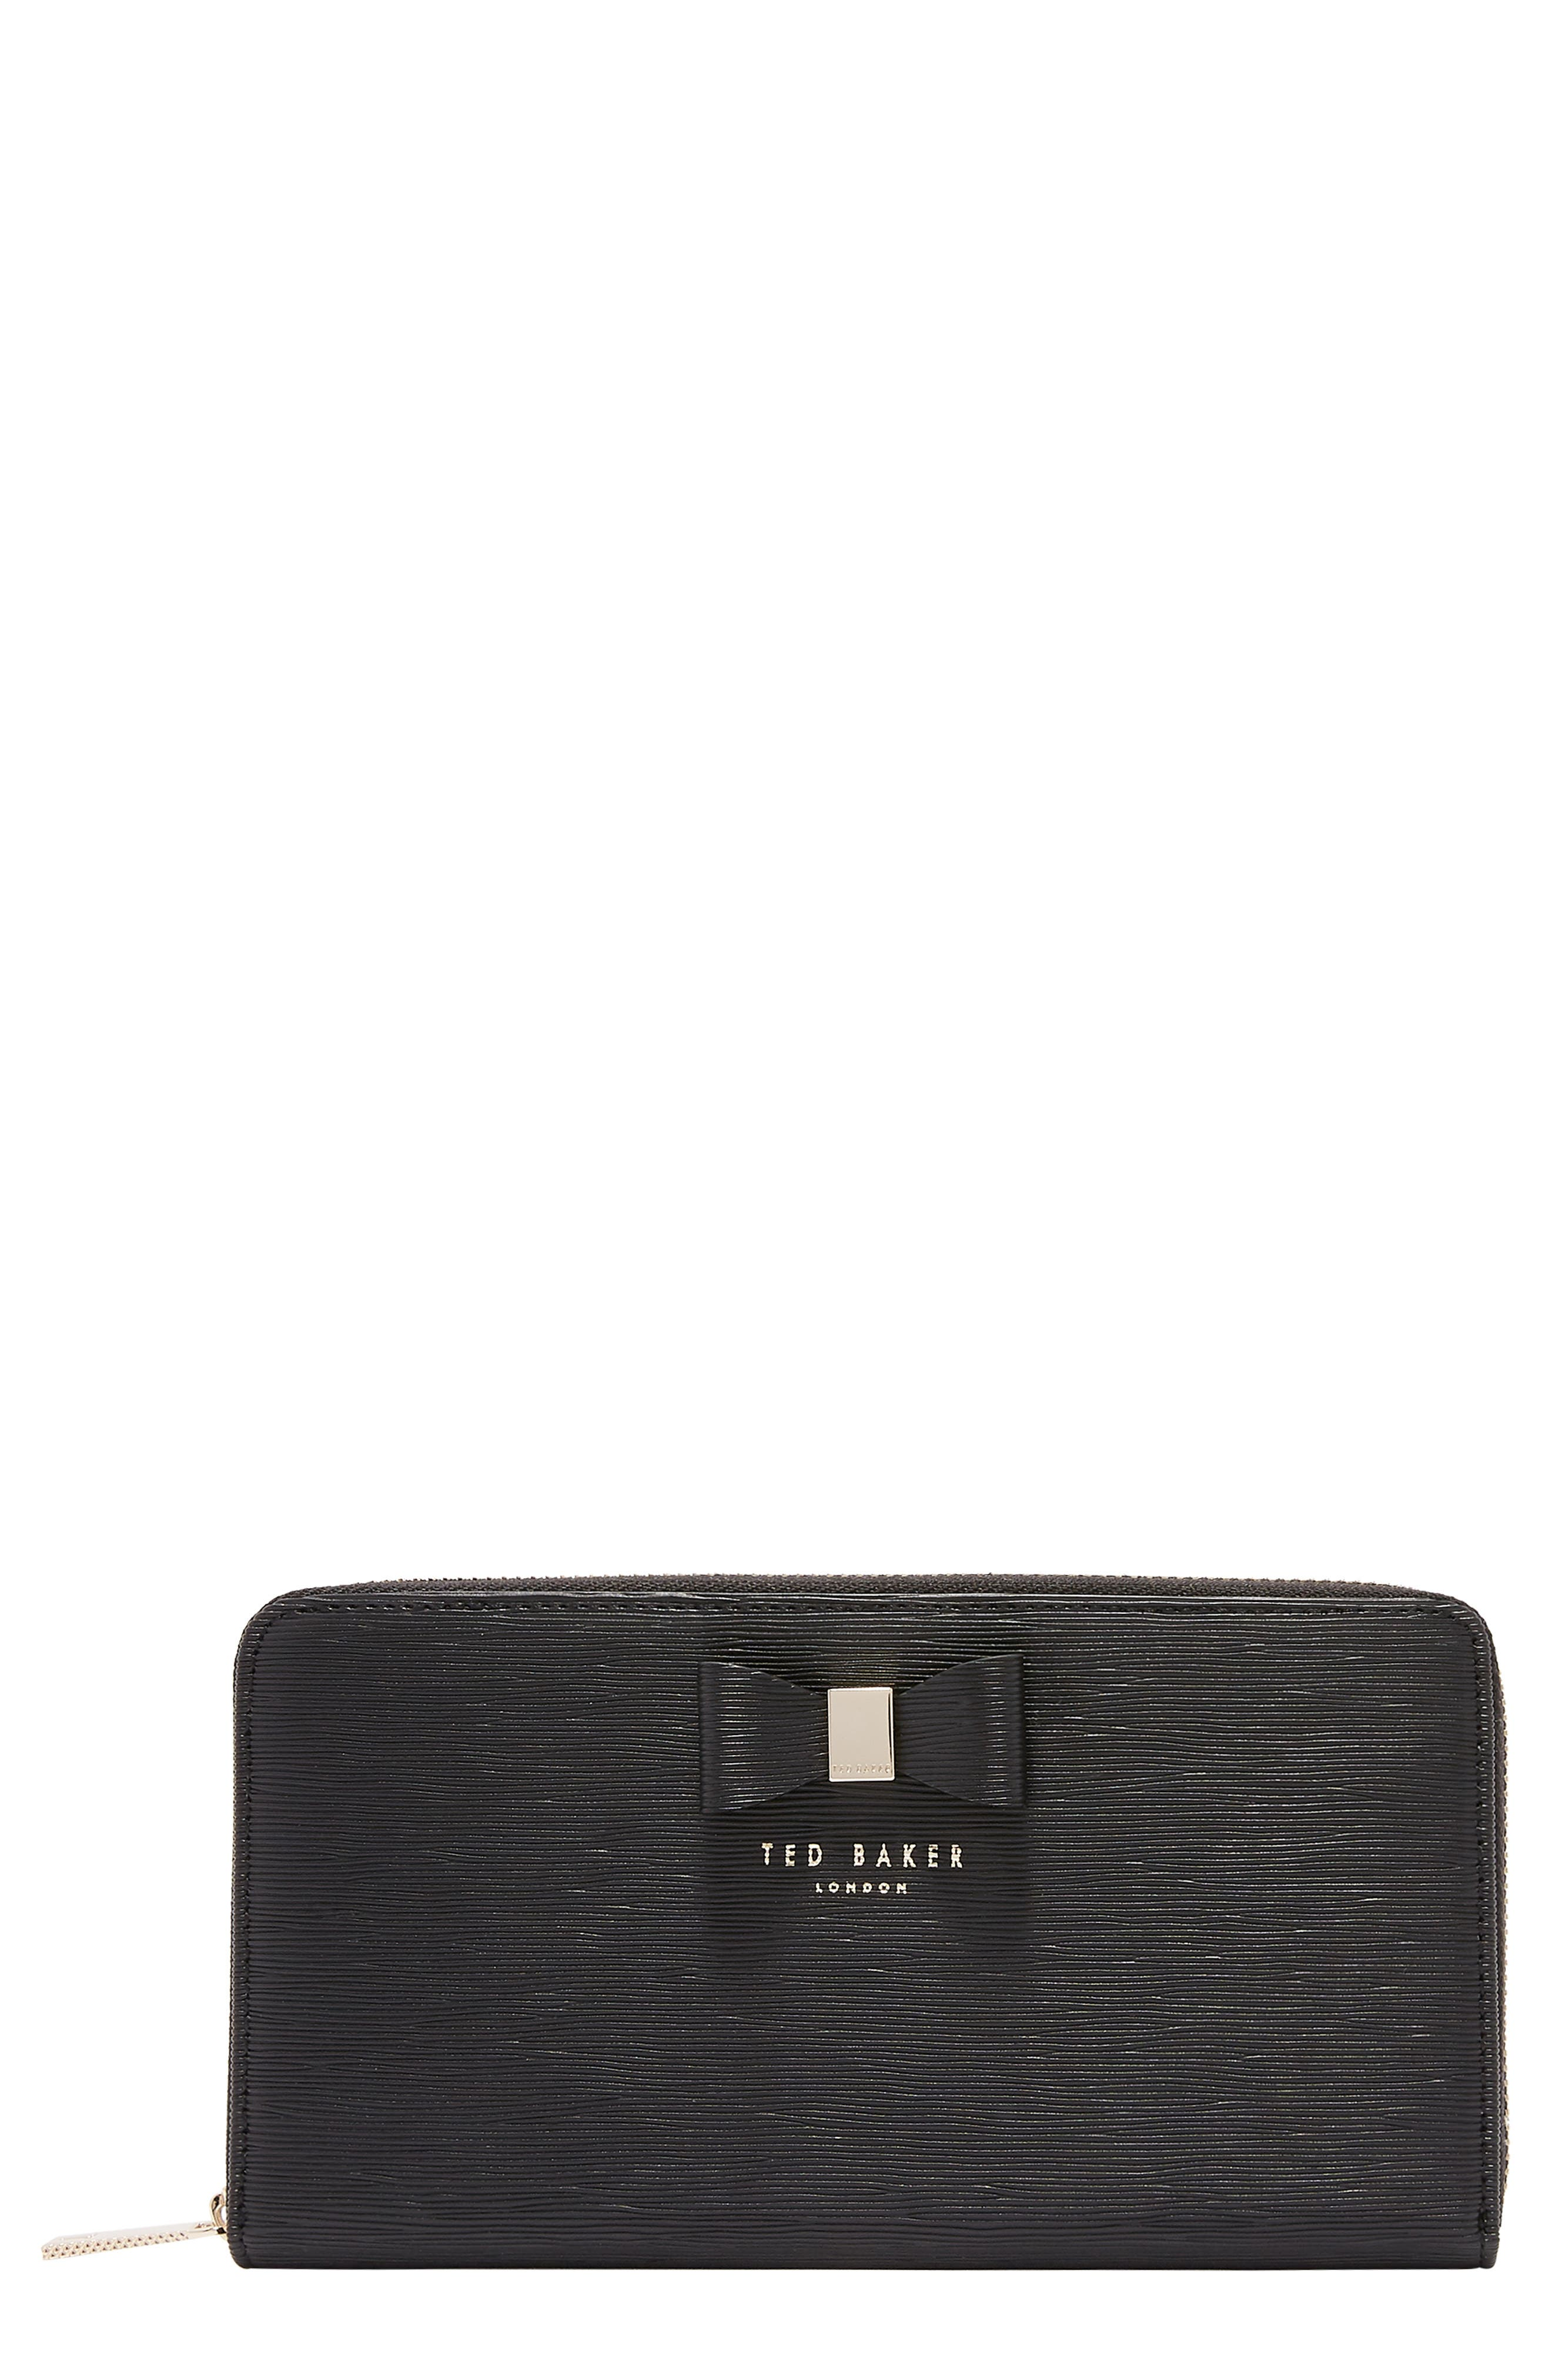 Peony Plissé Leather Matinee Wallet,                         Main,                         color, 001